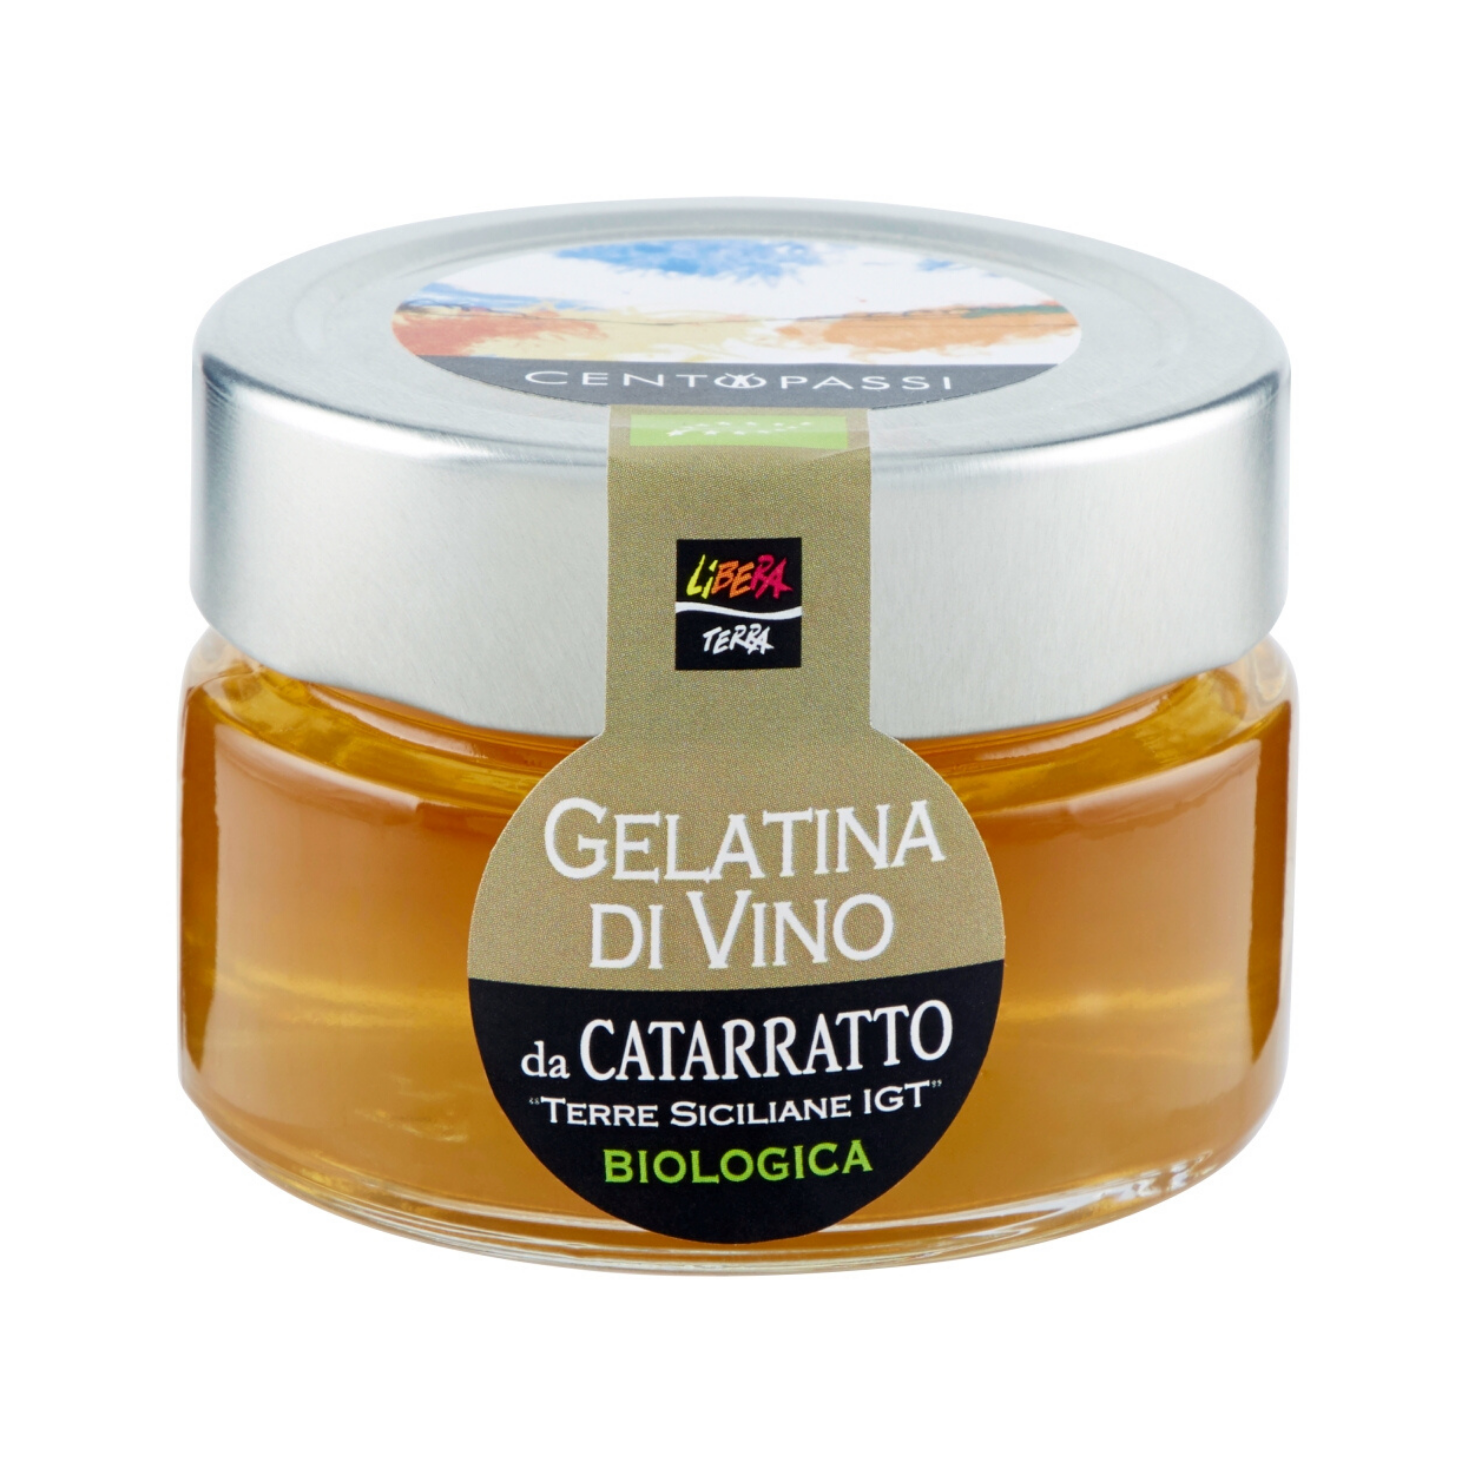 Gelatina di Vino Biologica da Catarratto IGT 100g